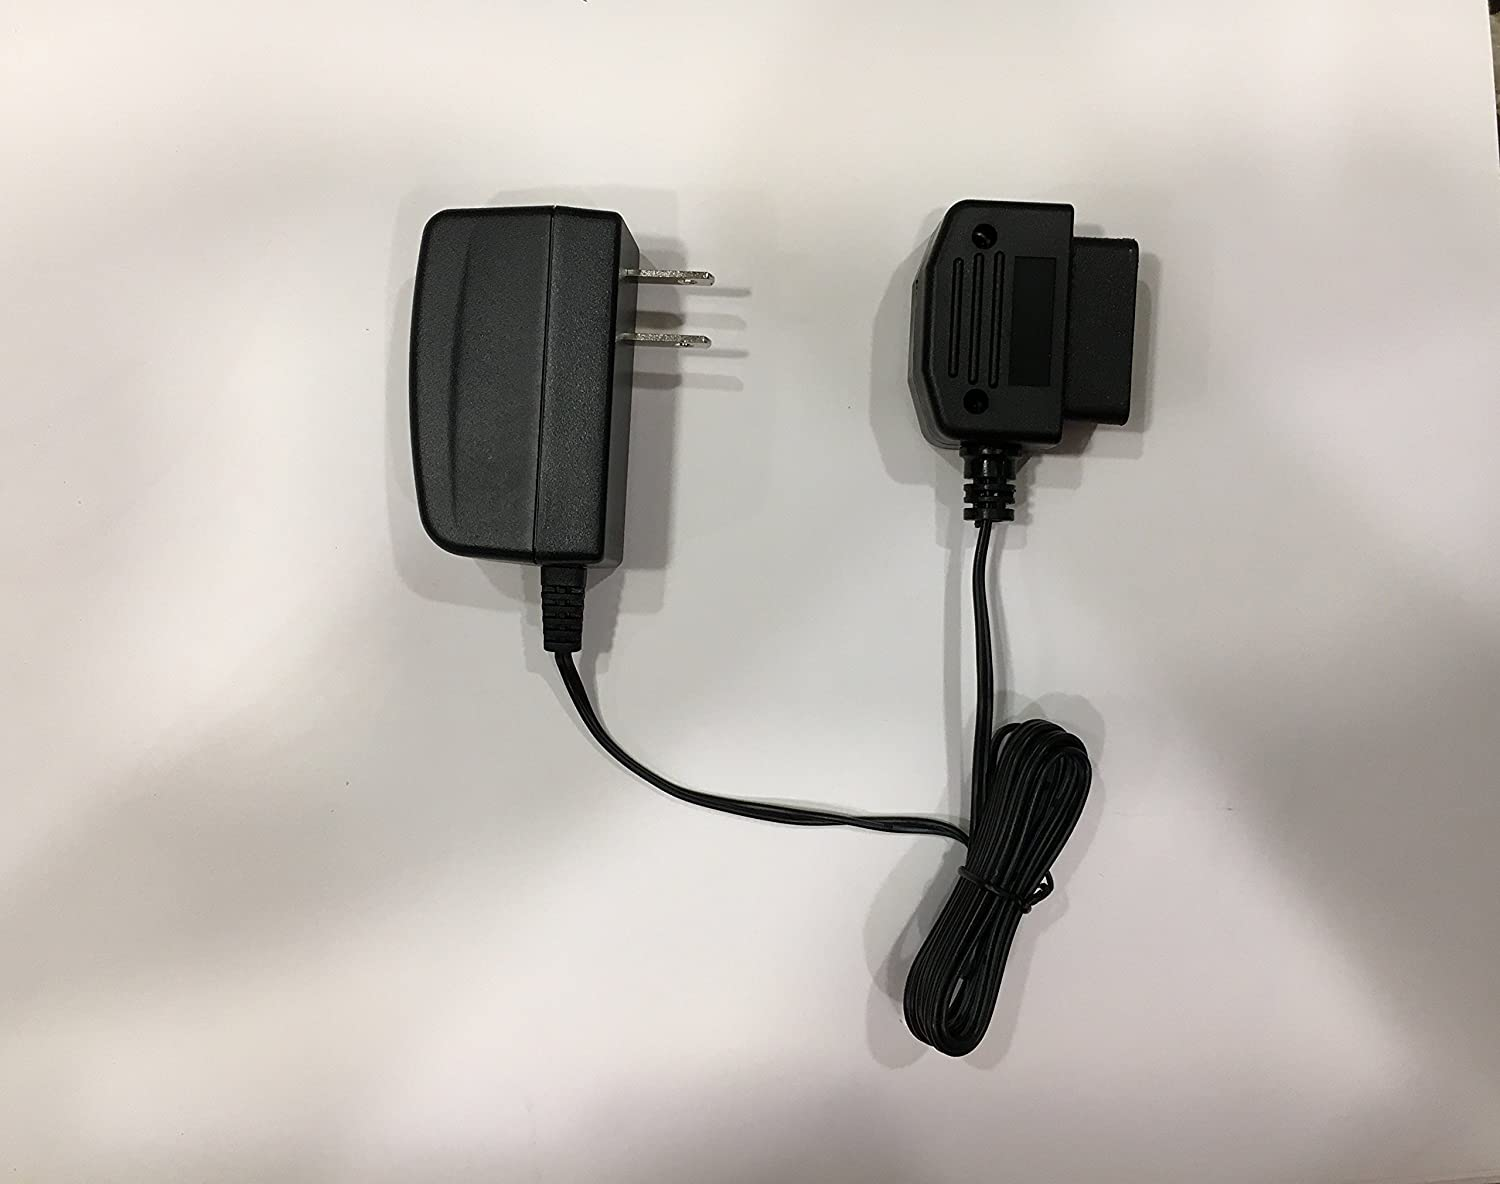 AC Adapter for T-Mobile SyncUp Drive OBD II LTE Wi-Fi Hotspot Device